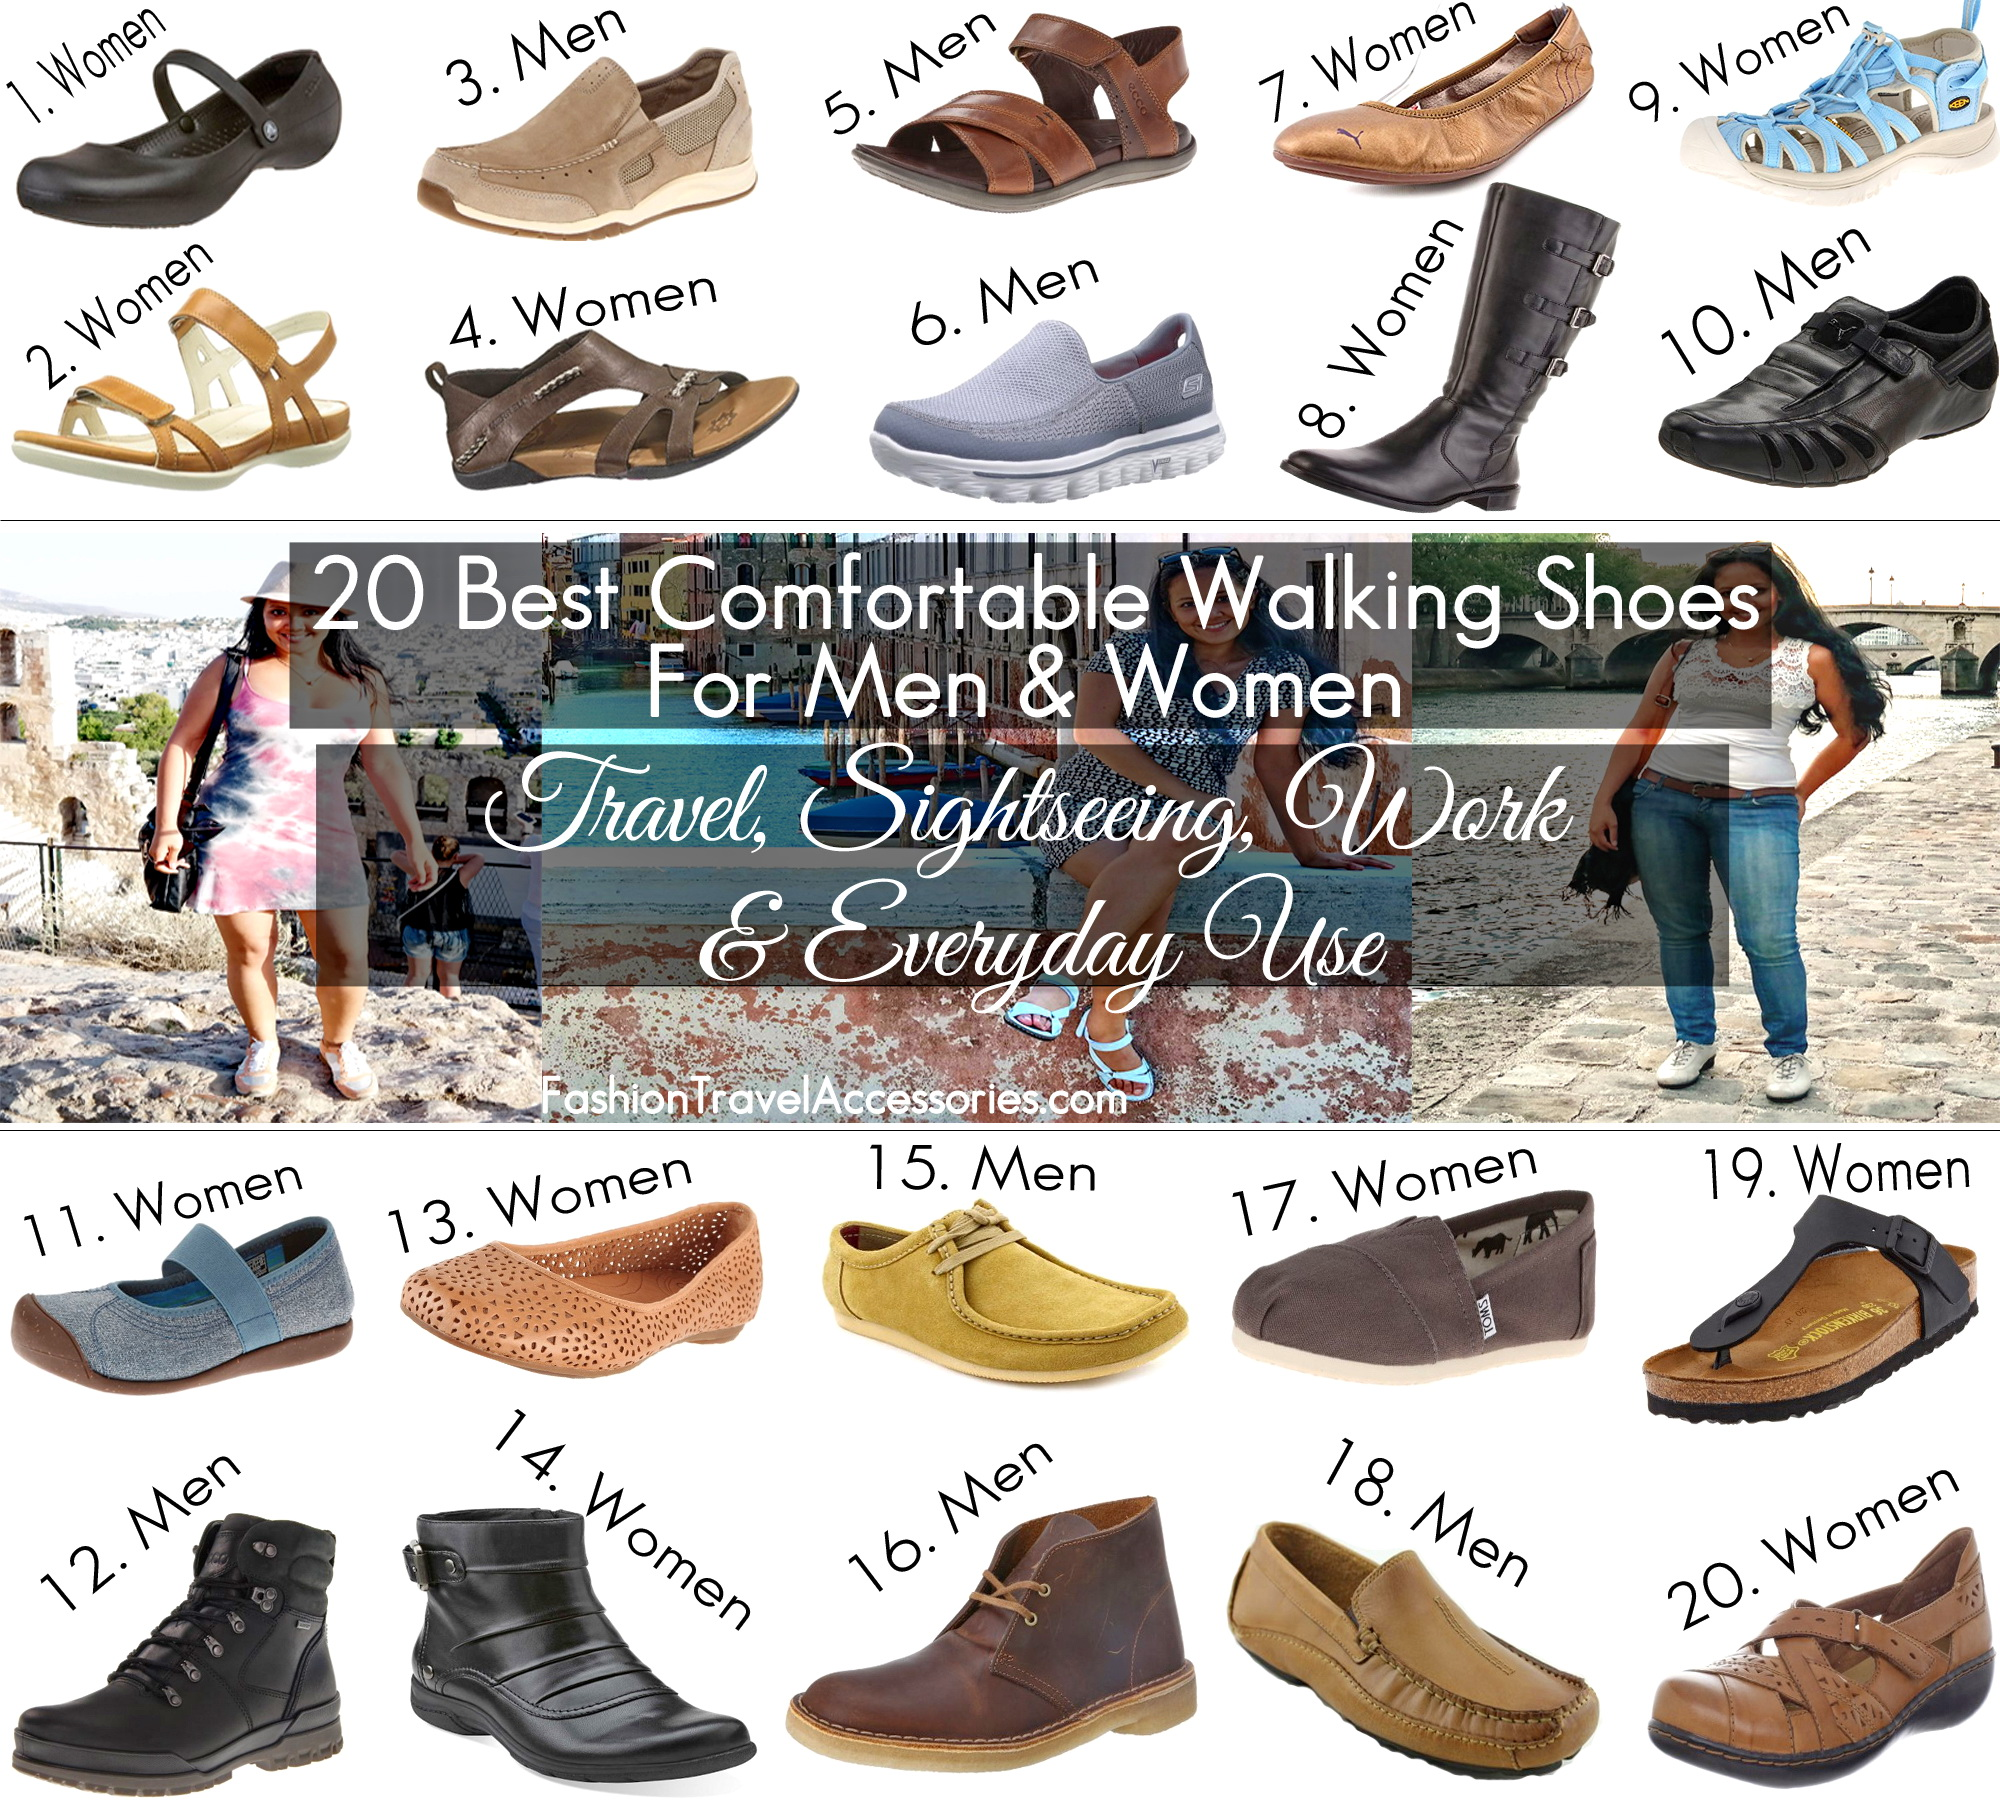 Working Shoes For Men | Shoes For Crews | Shop Comfortable Working